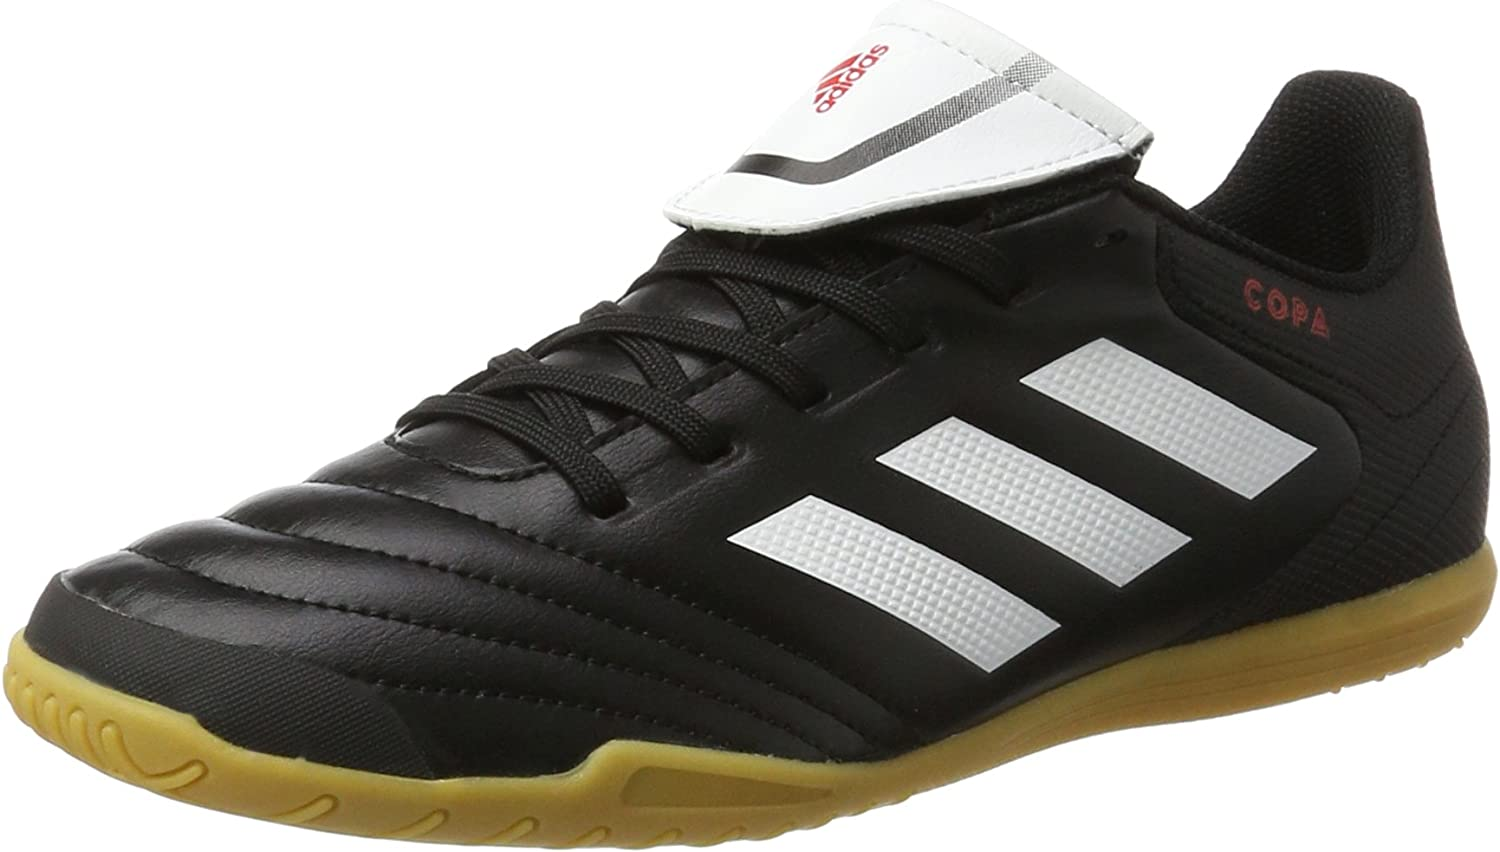 Adidas Men's's Copa 17.4 in Footbal shoes